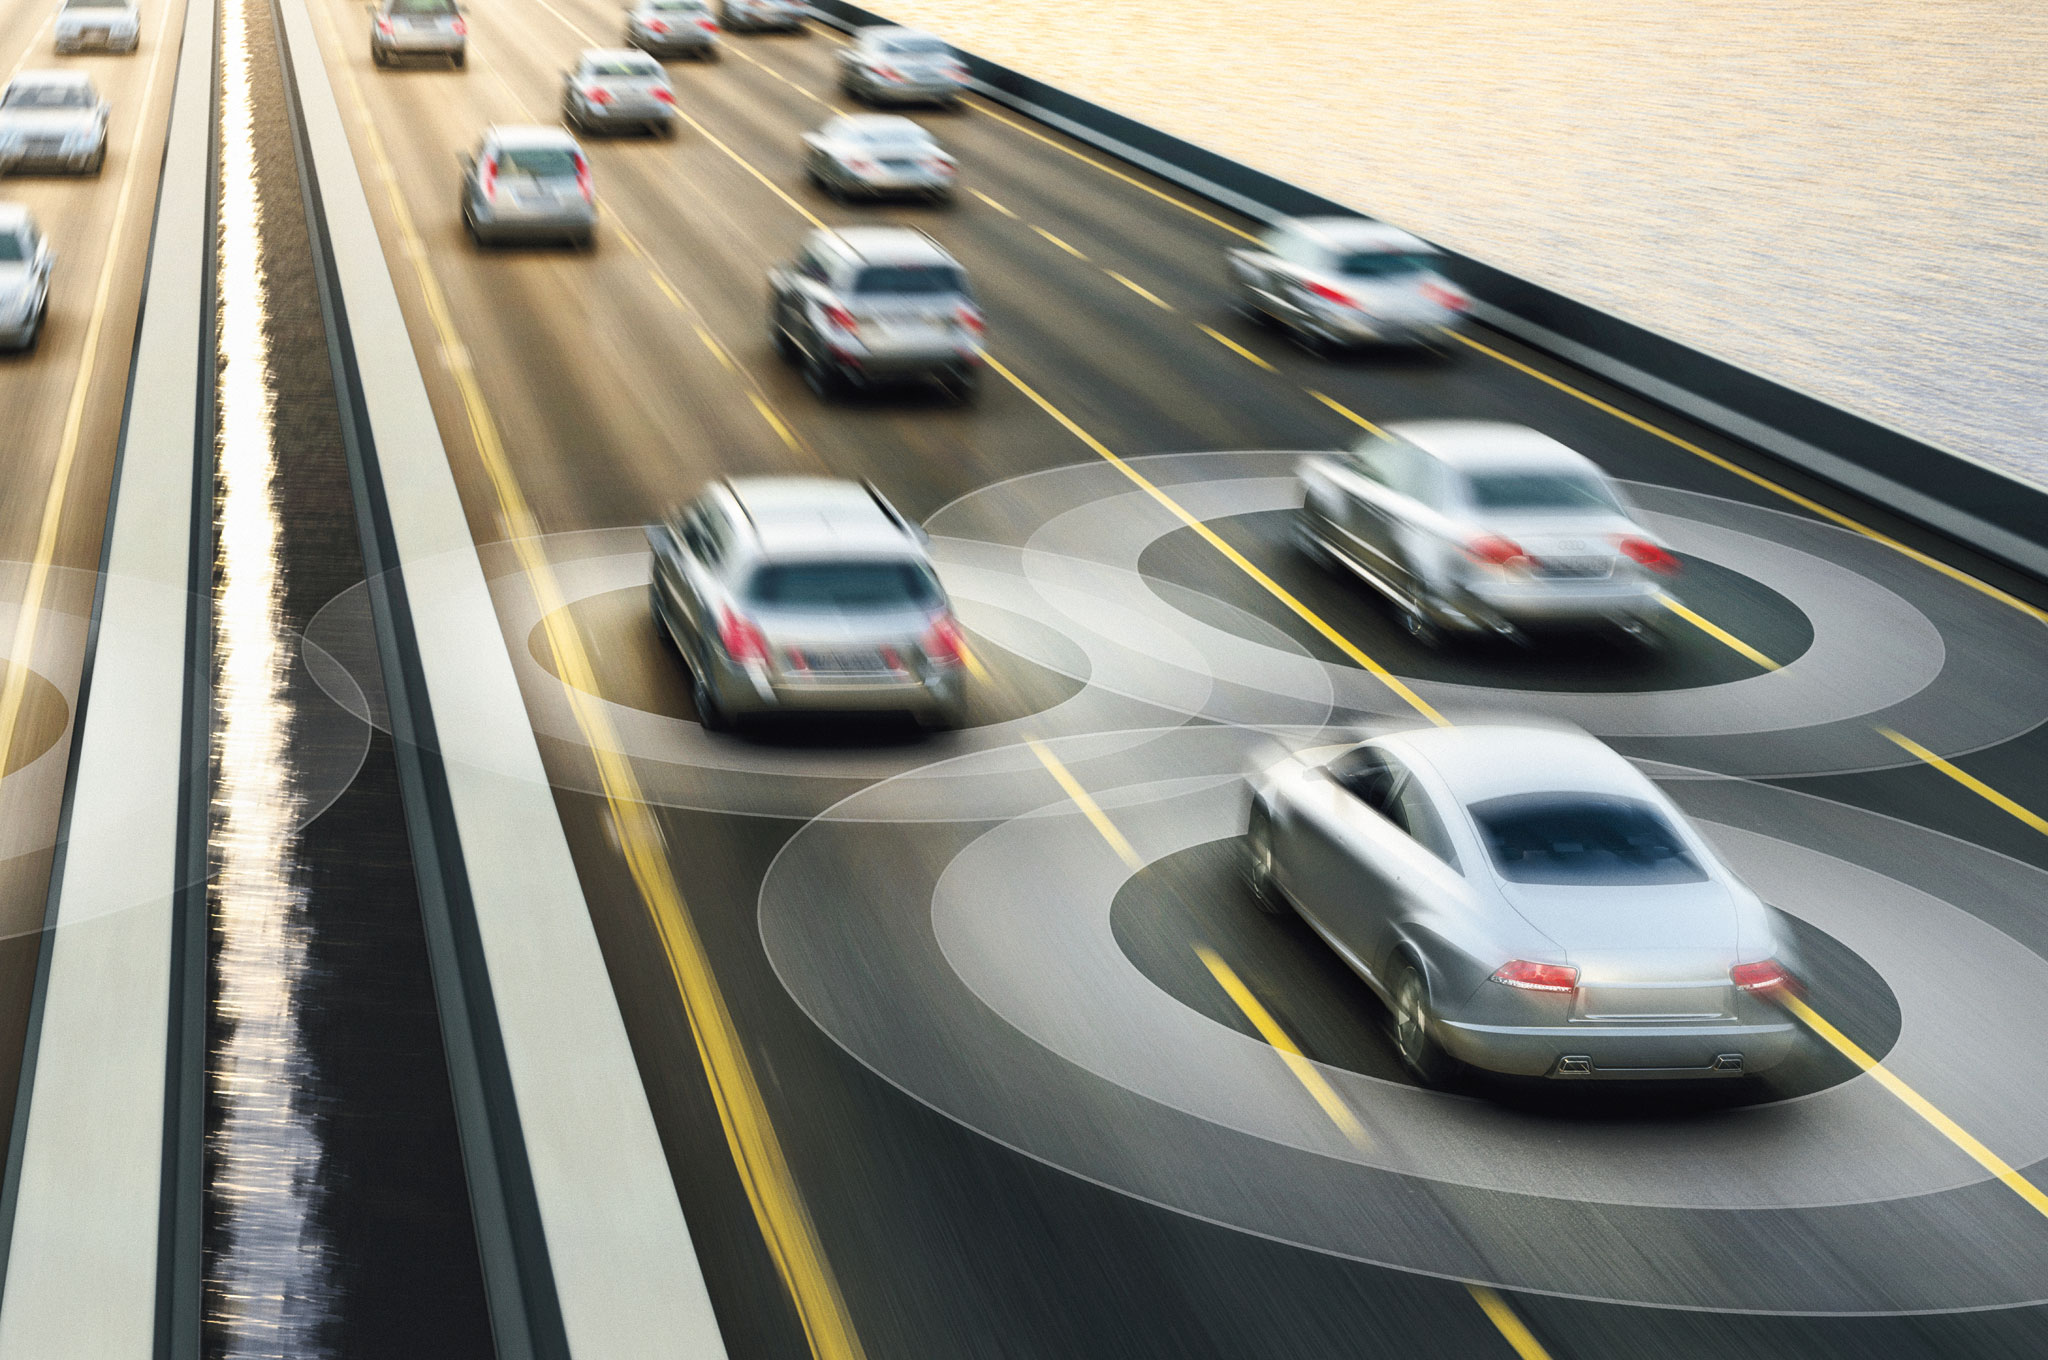 Autonomous Cars: More on the Pros, Cons, and Competition